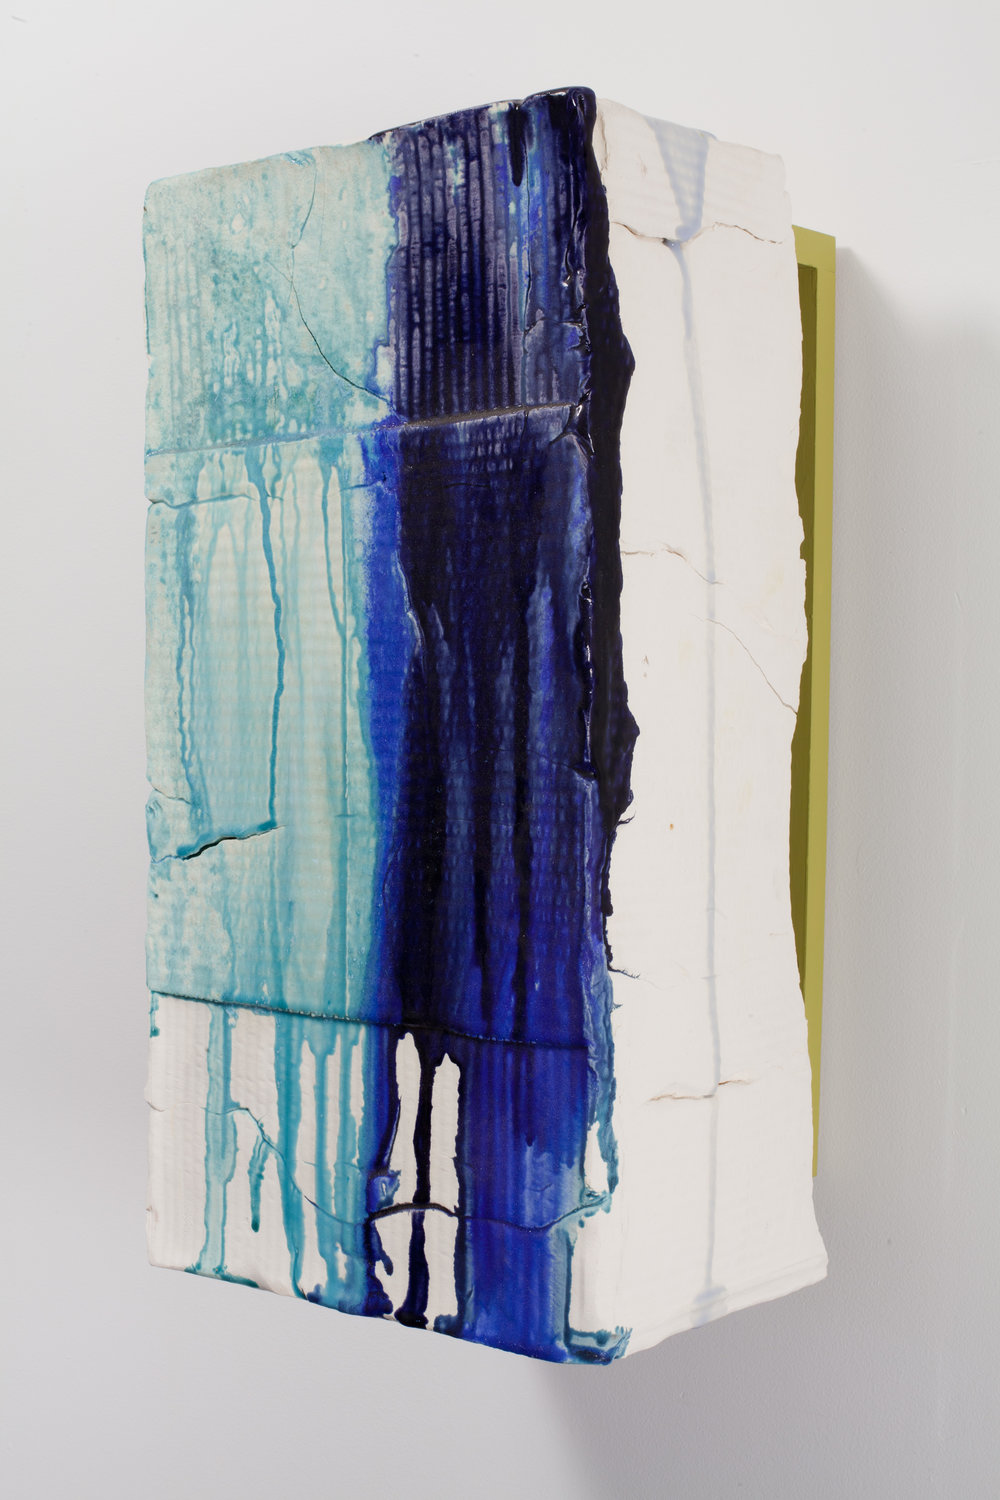 The Blues, I  2011 Earthenware, glaze, pine, acrylic 23.5 x 11.5 x 10.5 in.